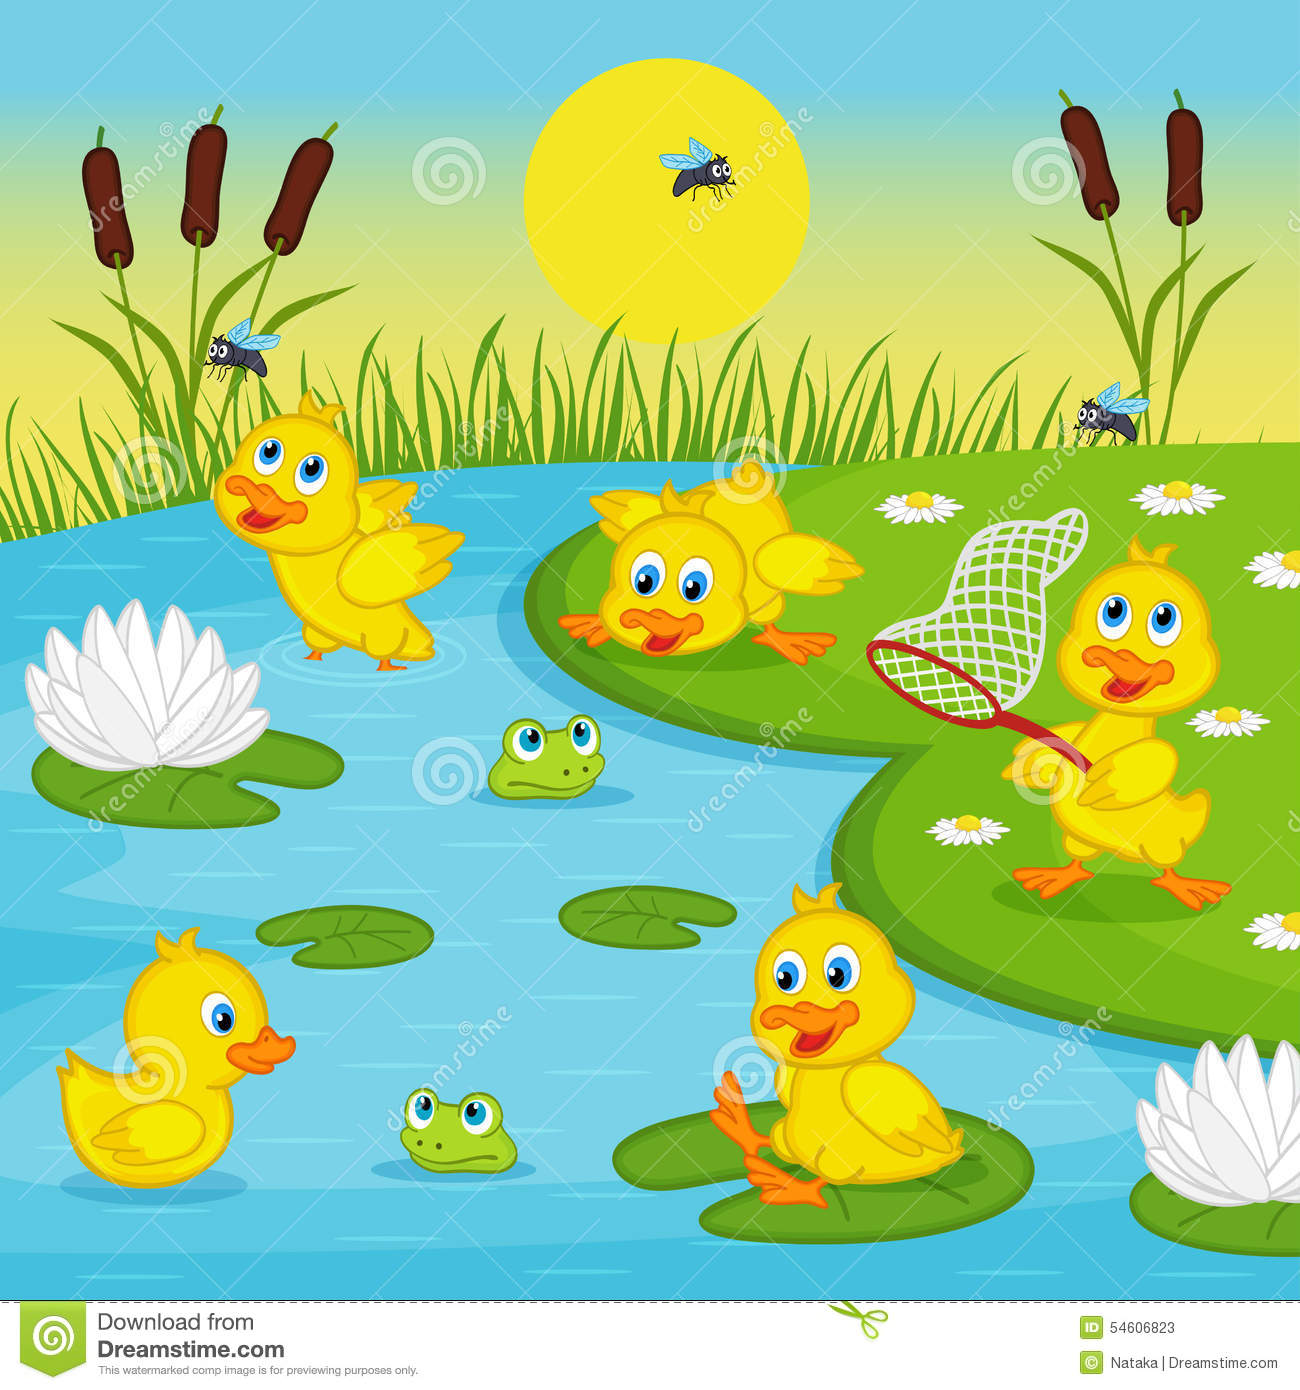 Ducklings Playing In Lake Stock Vector. Illustration Of